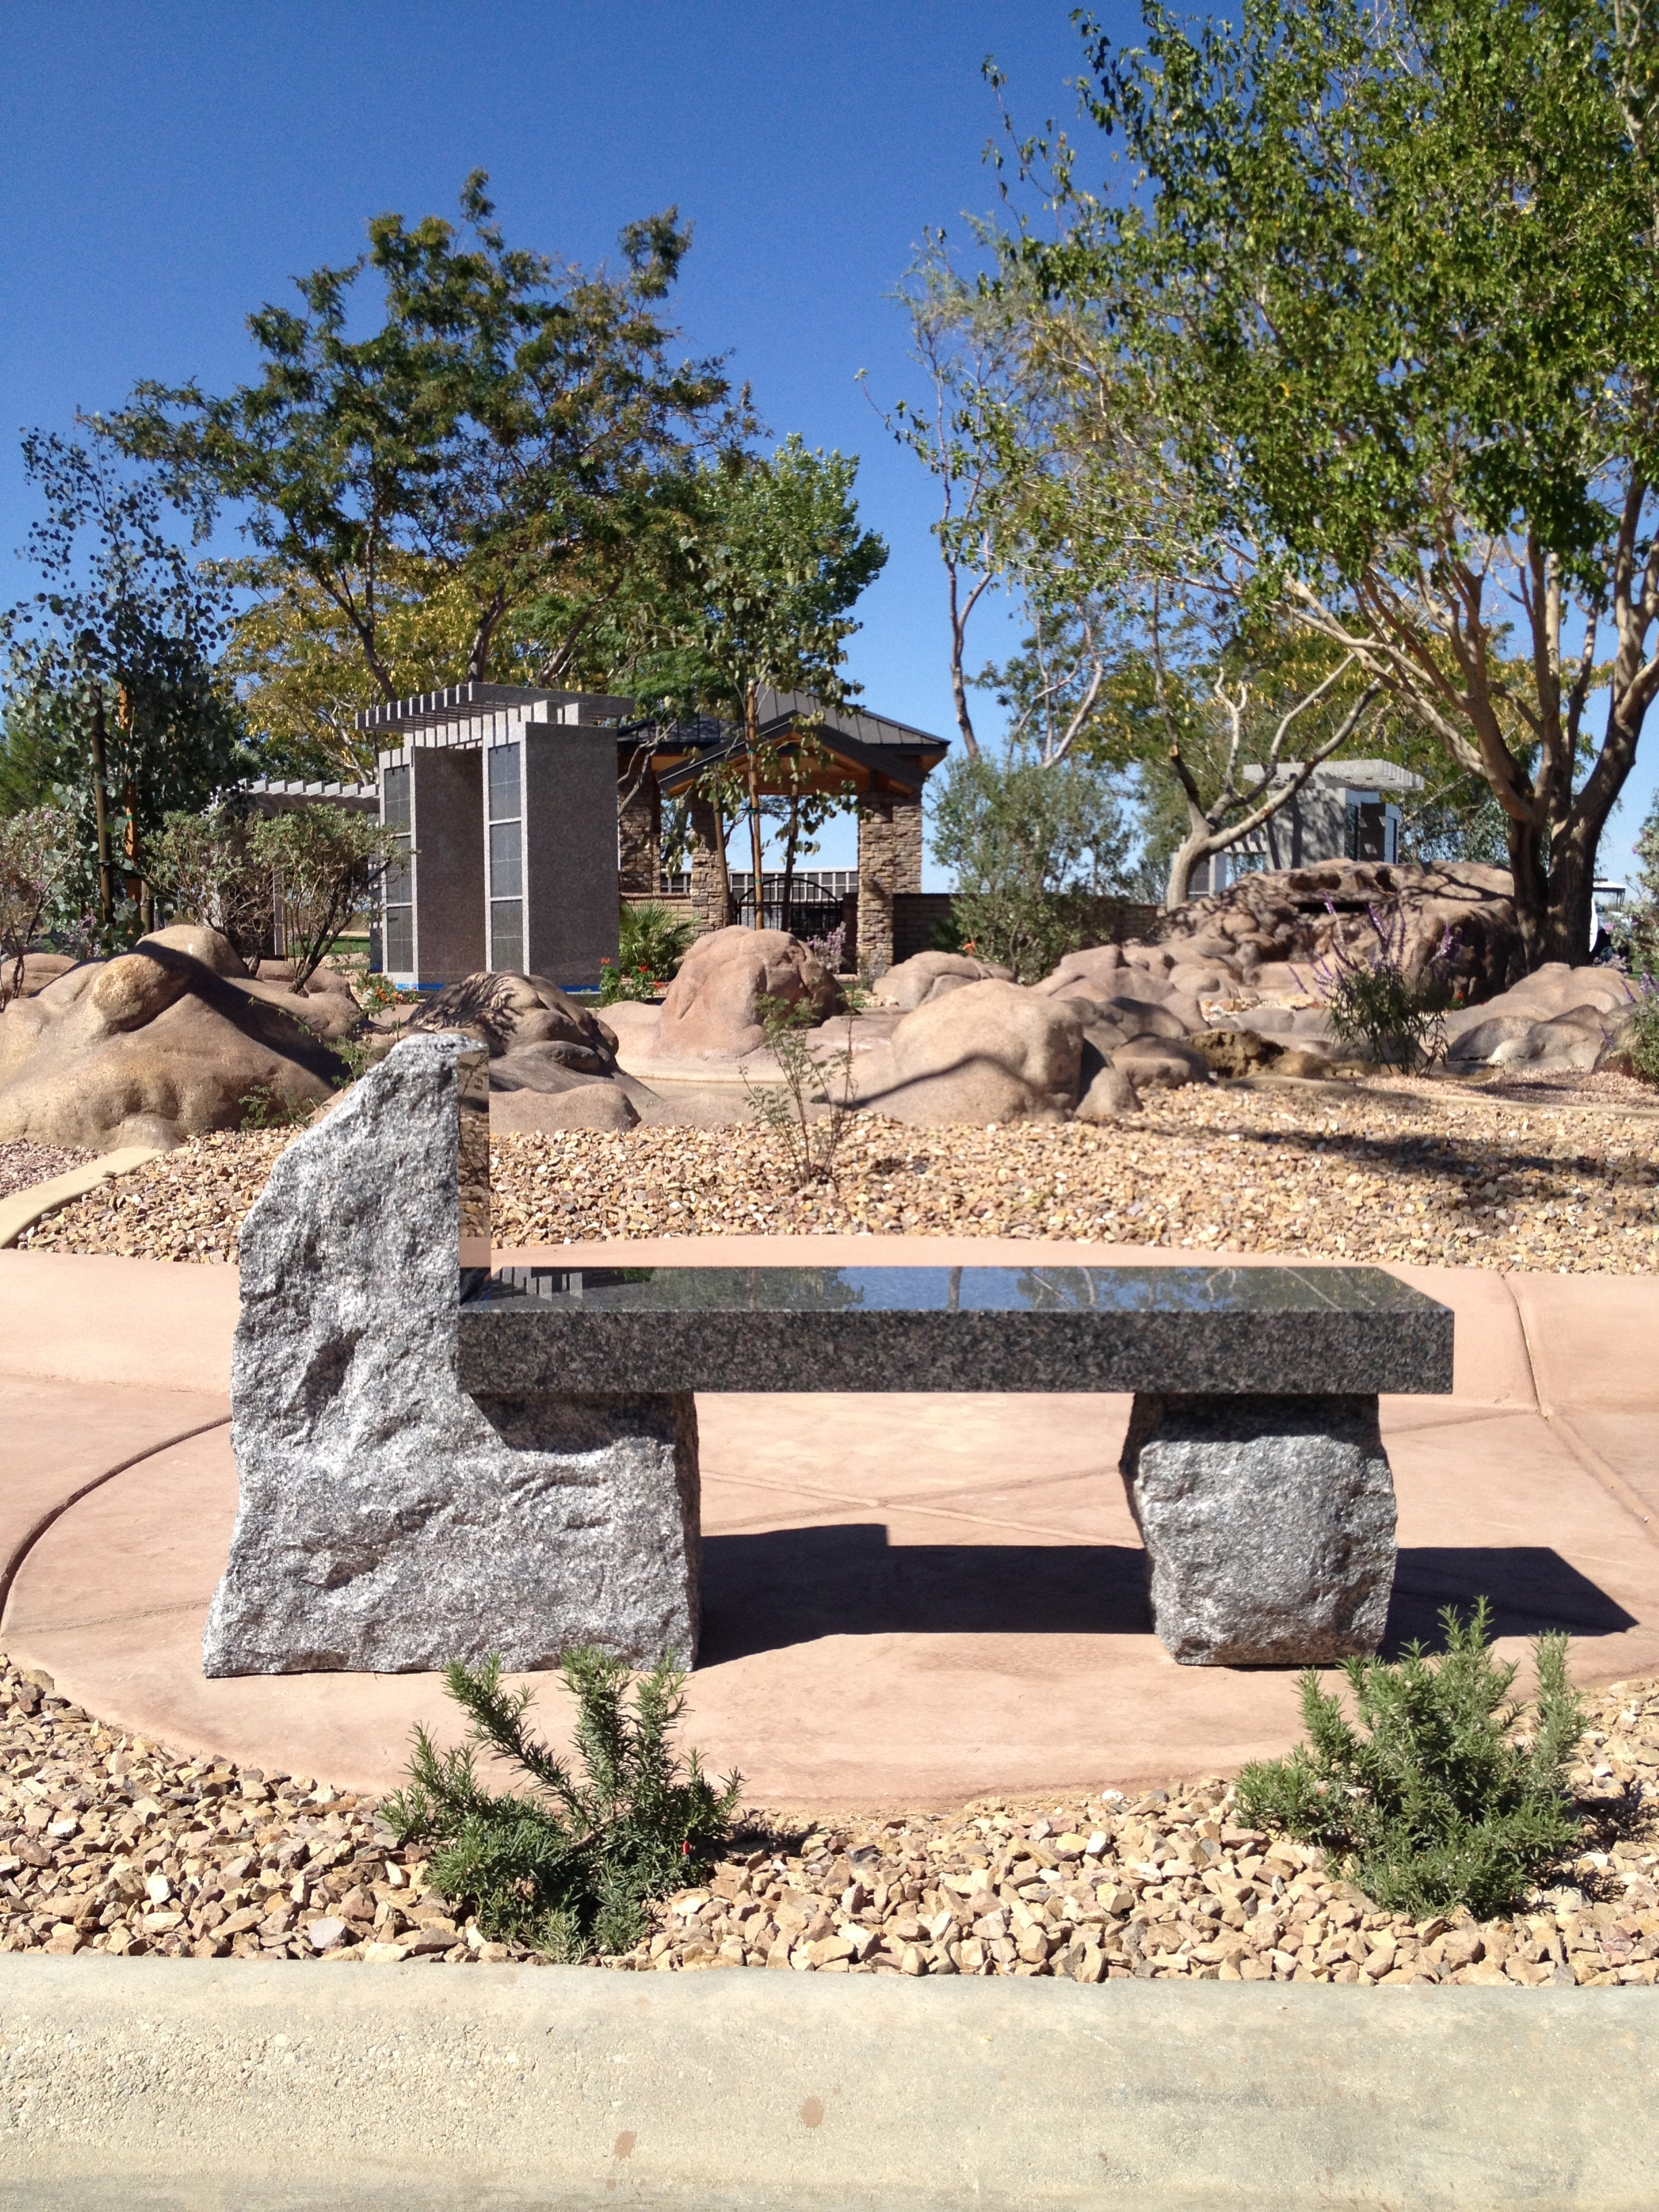 A bench memorial with rough stone supports